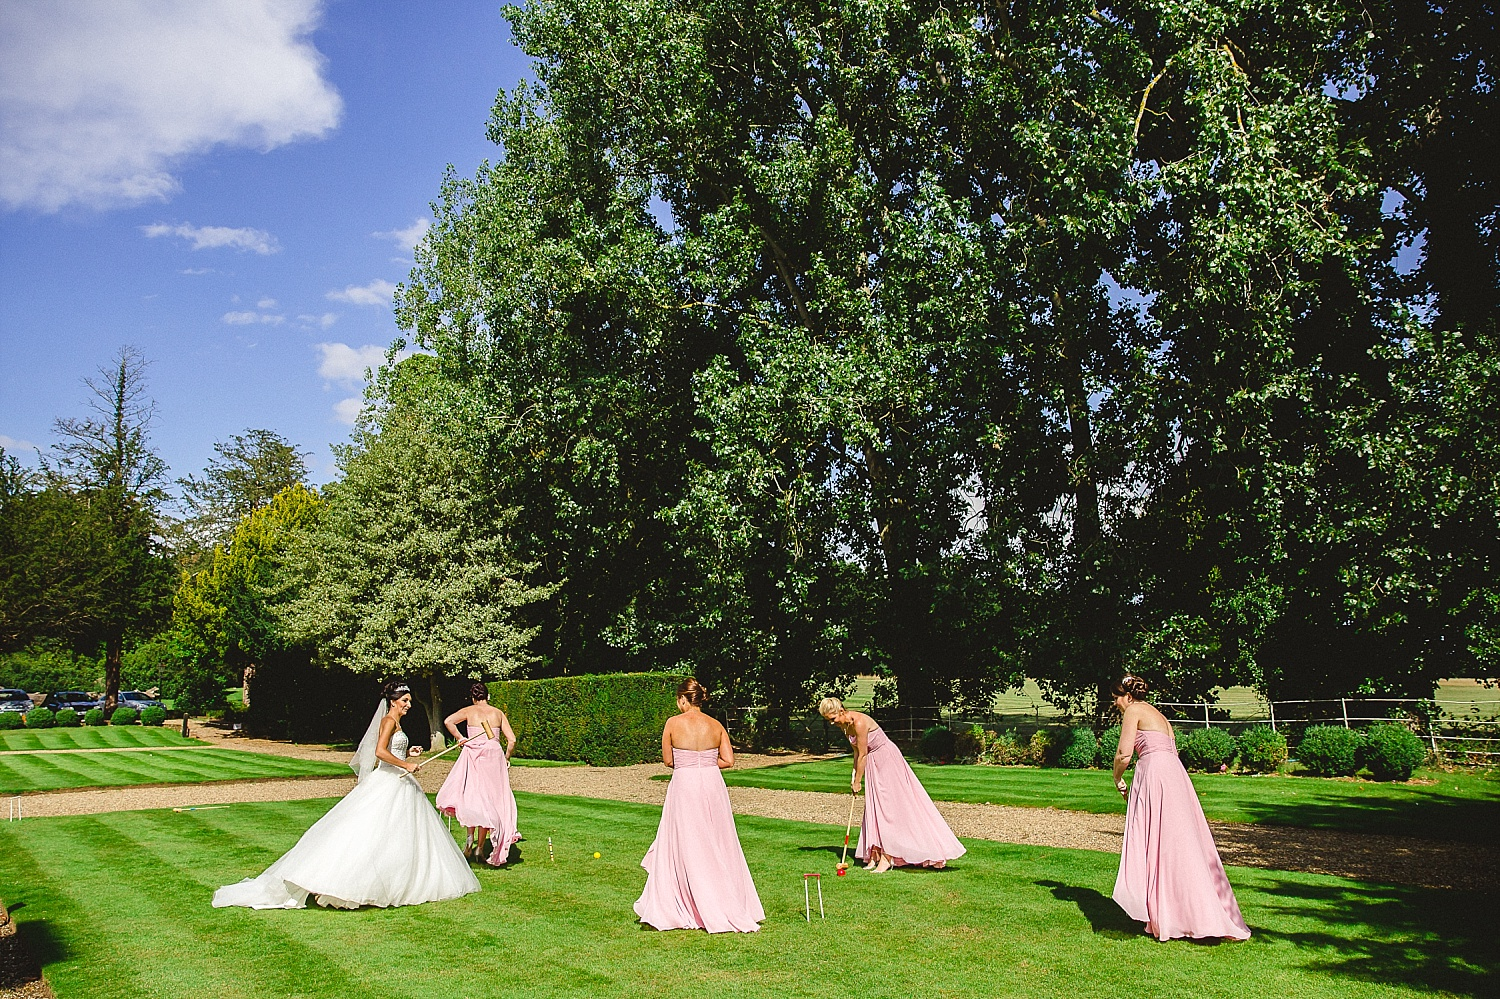 Wedding Photographer Essex - Gosfield Hall Wedding - Bridesmaids